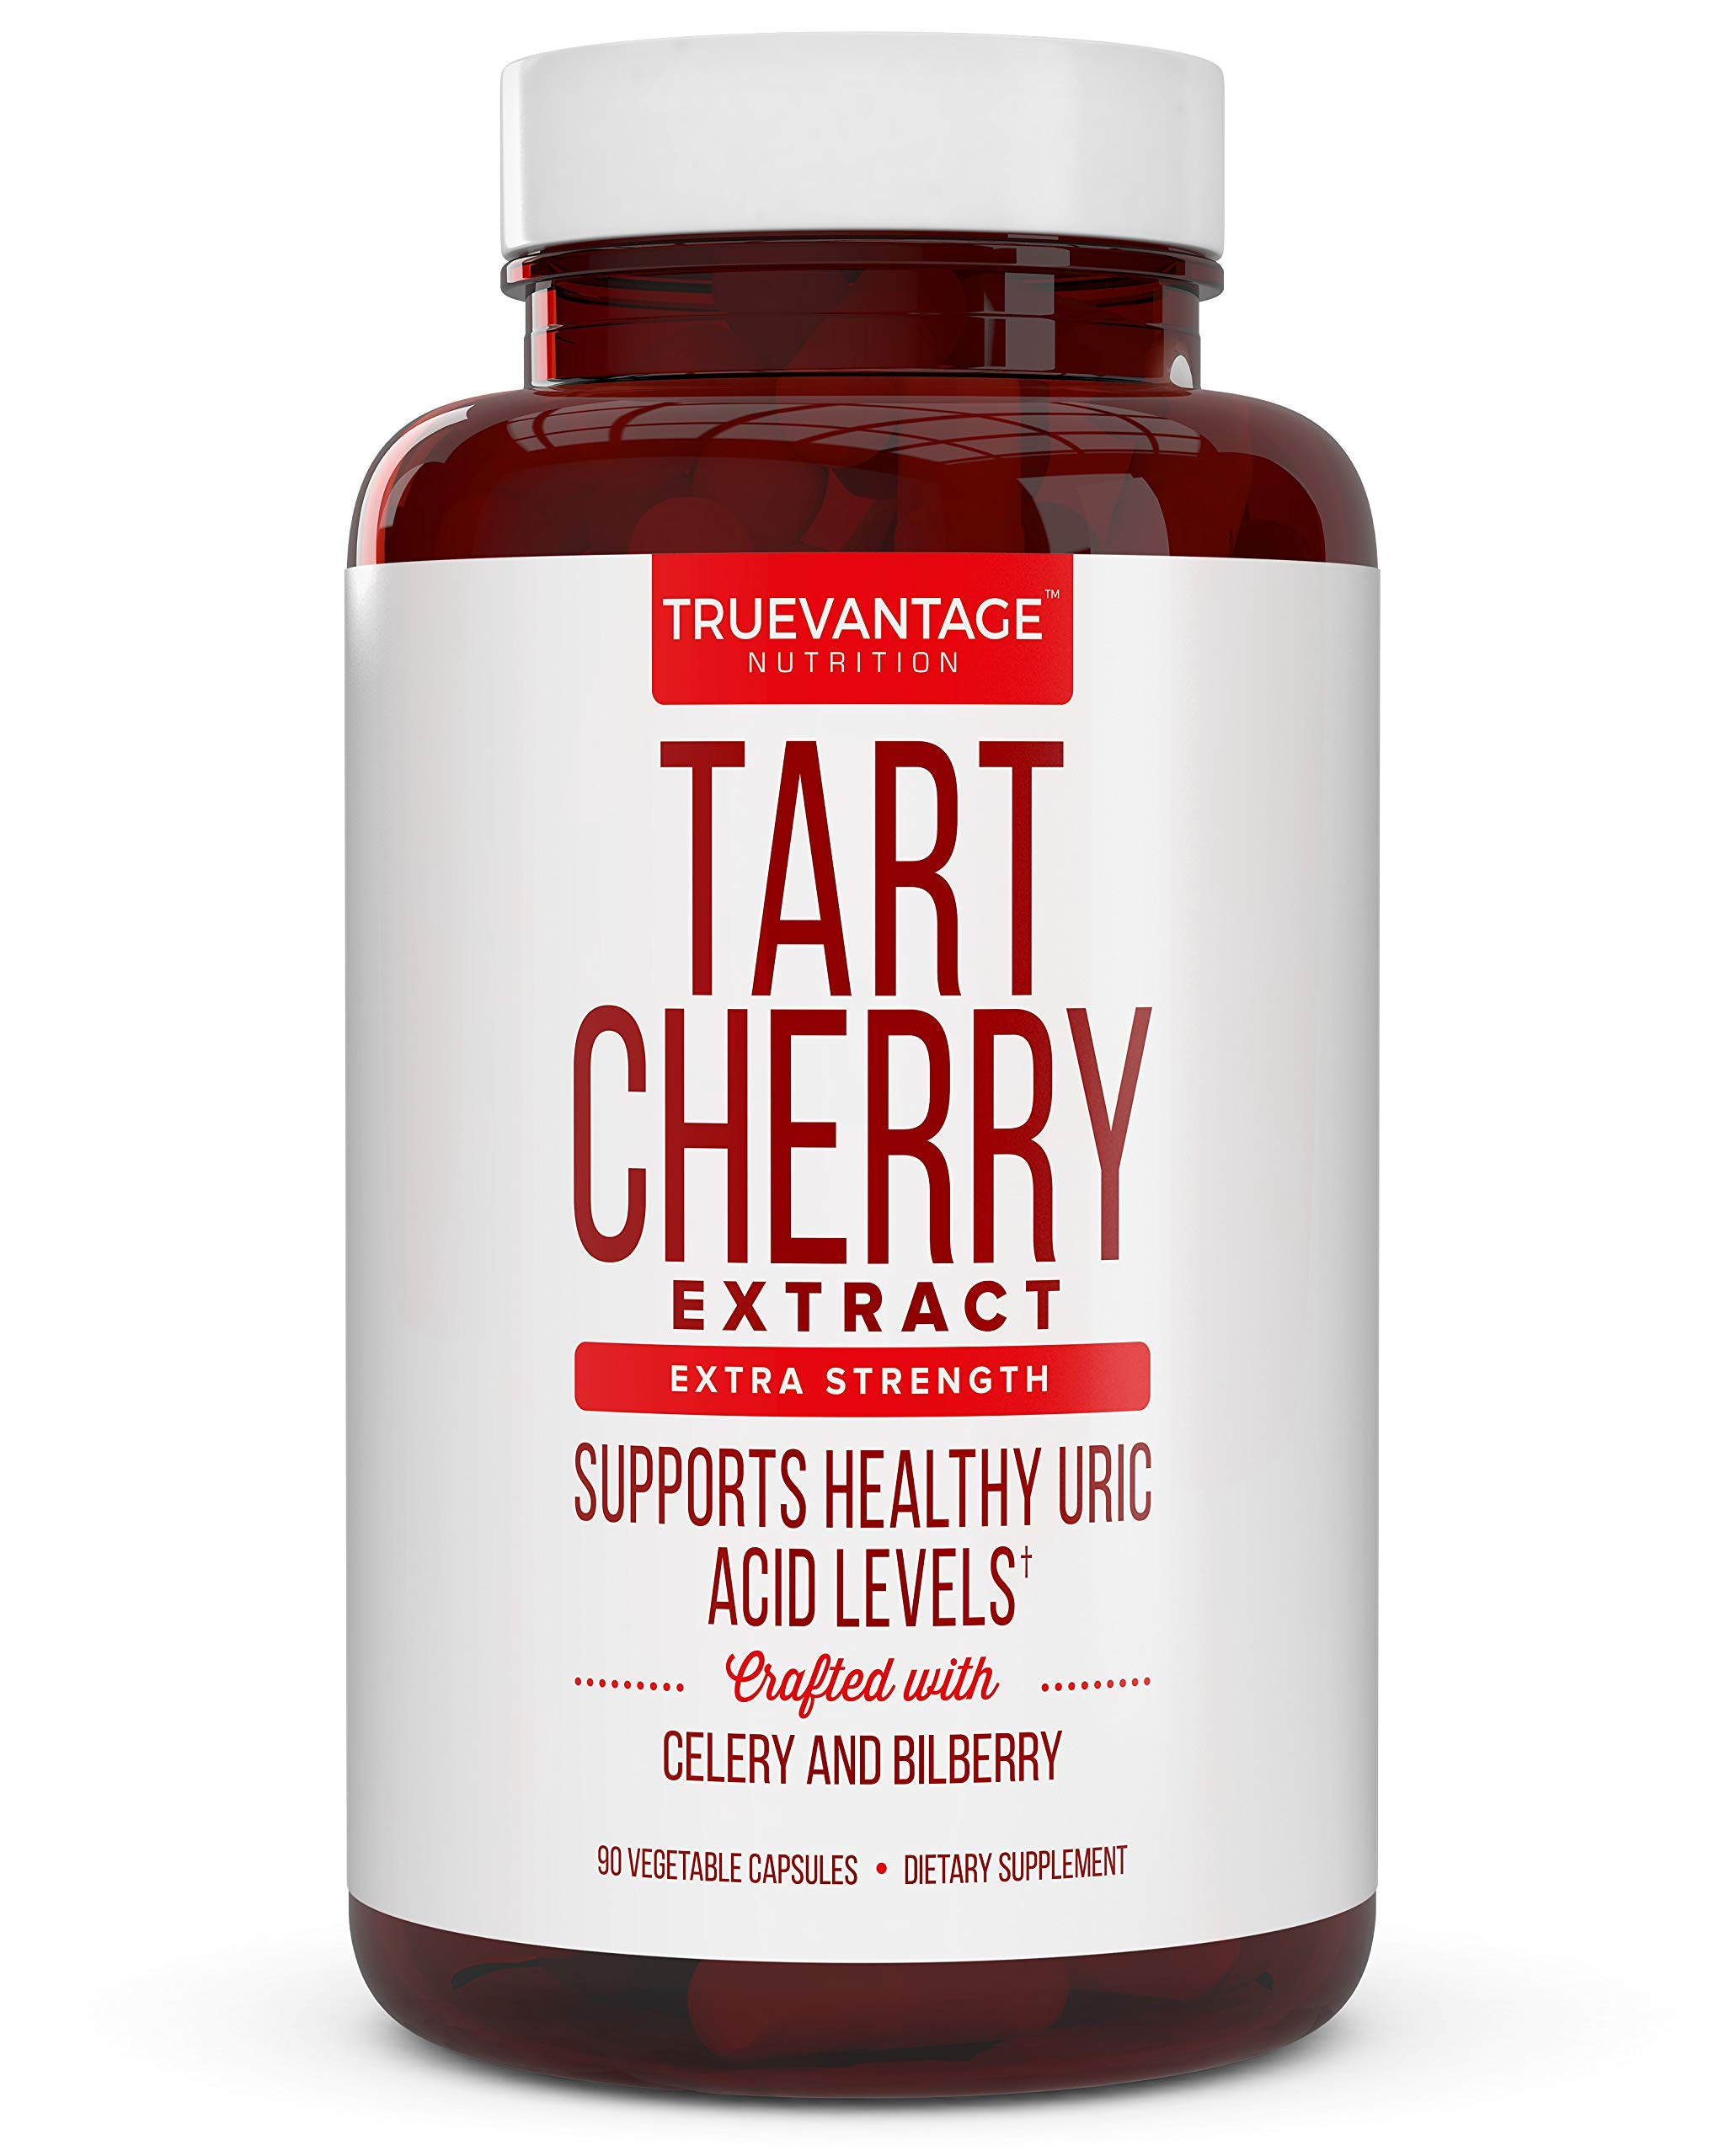 Tart Cherry Extract 1500mg Plus Celery Seed and Bilberry Extract -Anti Inflammatory, Antioxidant Supplement, Uric Acid Support, Muscle Recovery and Joint Pain -90 Veggie Capsules​…